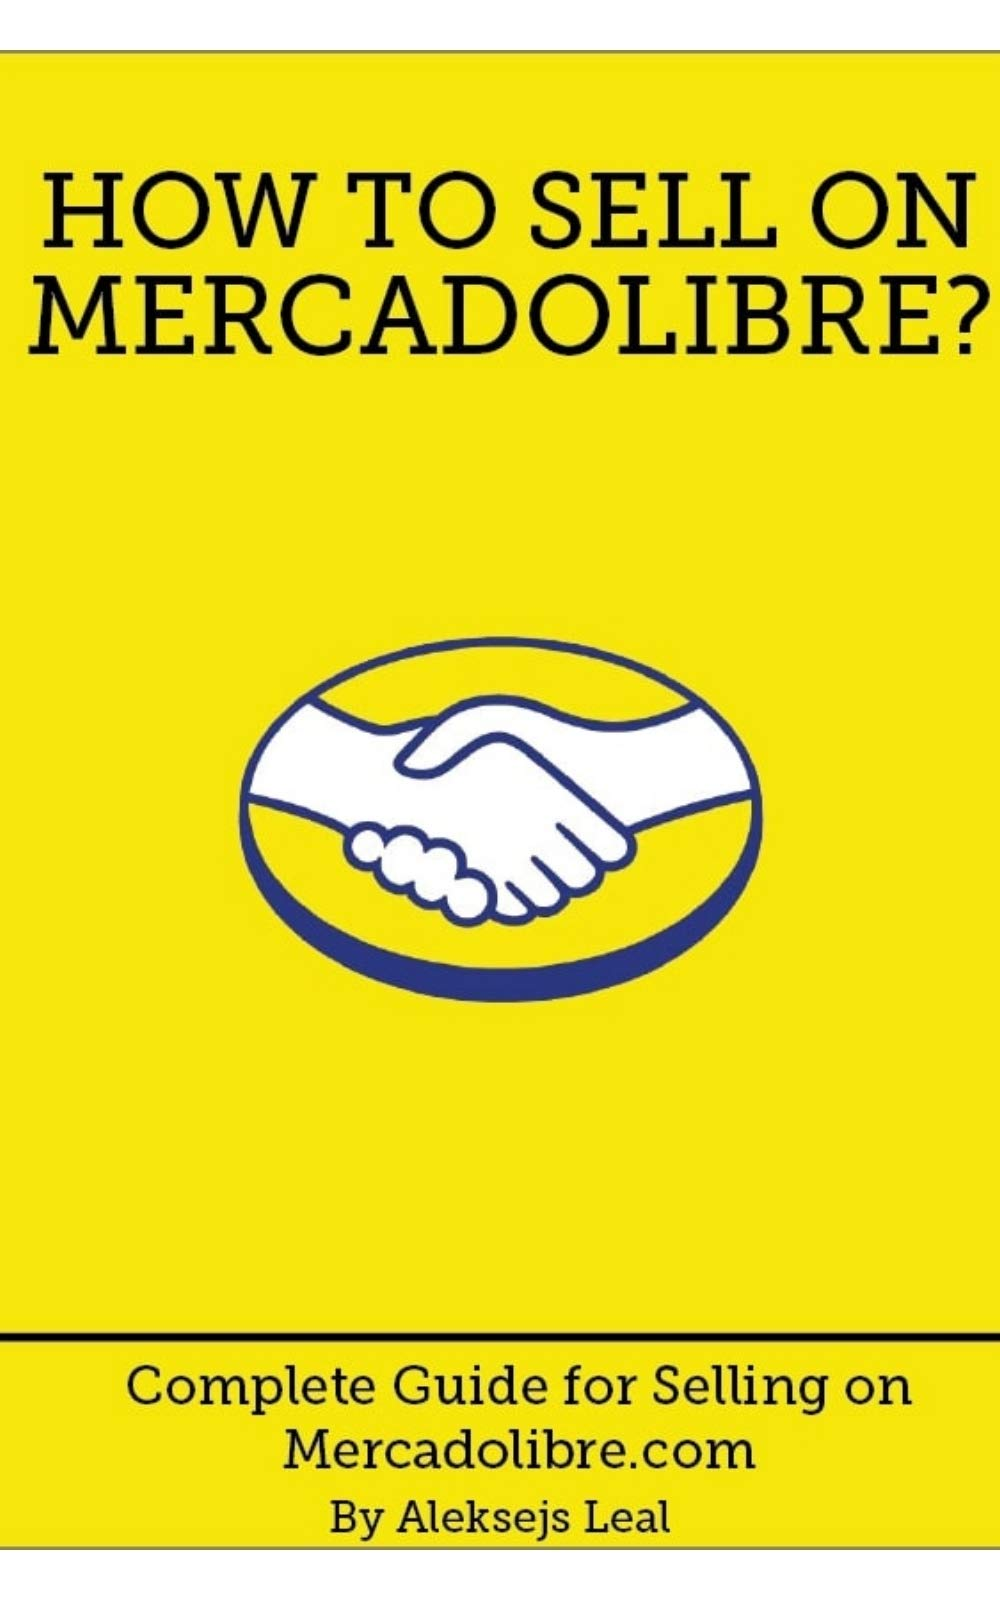 How To Sell On Mercadolibre? The Complete Guide For Selling On Mercadolibre.com